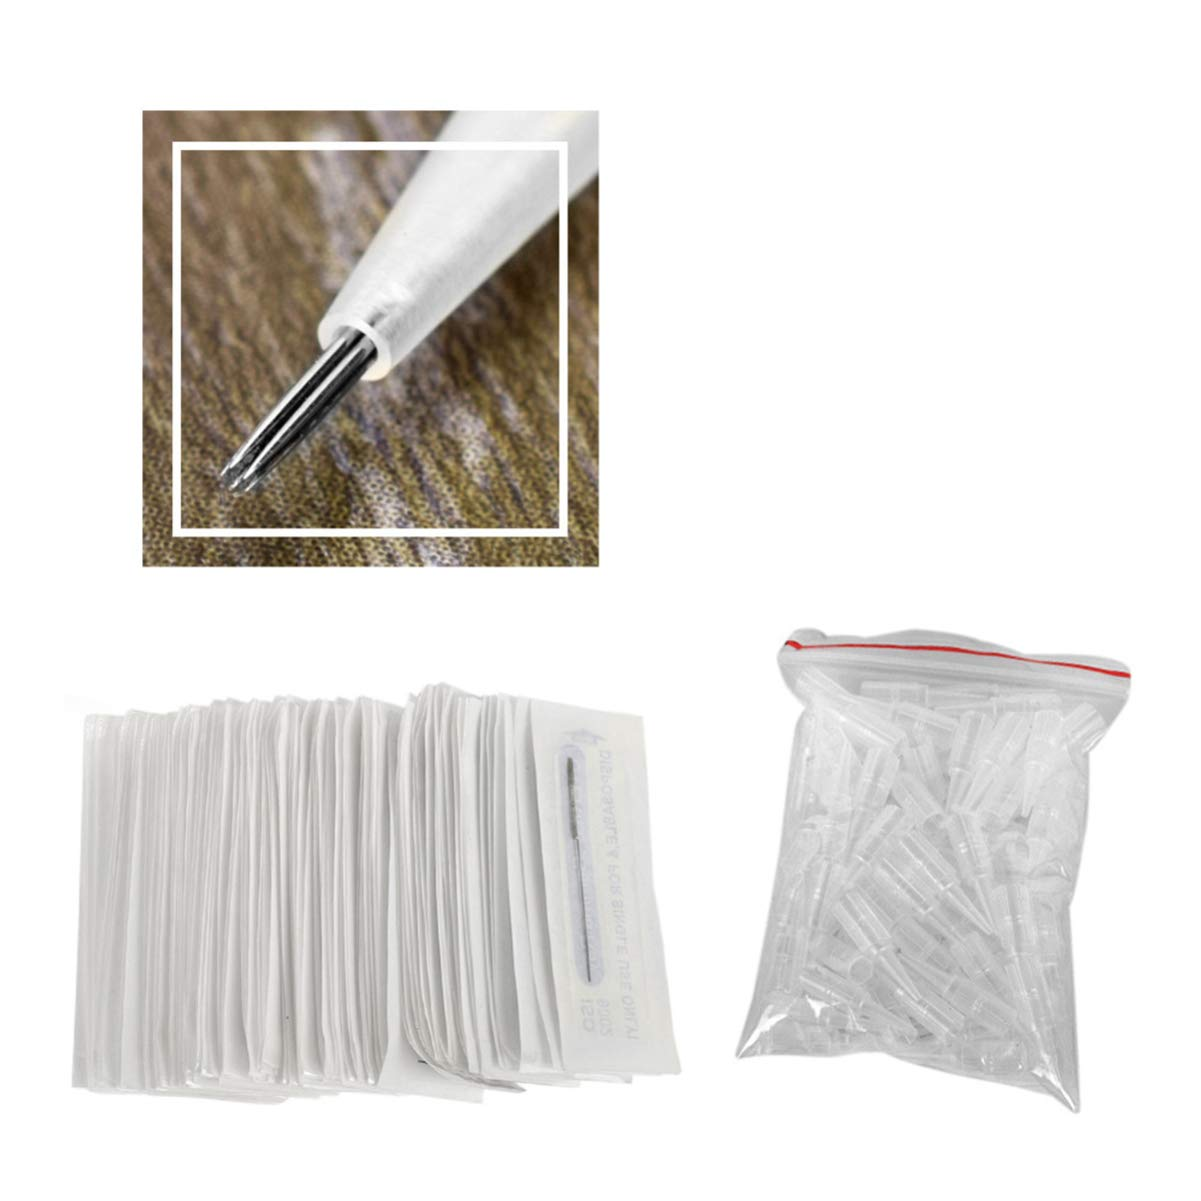 Healifty Disposable Sterilised Directly managed store Tattoo safety 5RL Tips Needles R